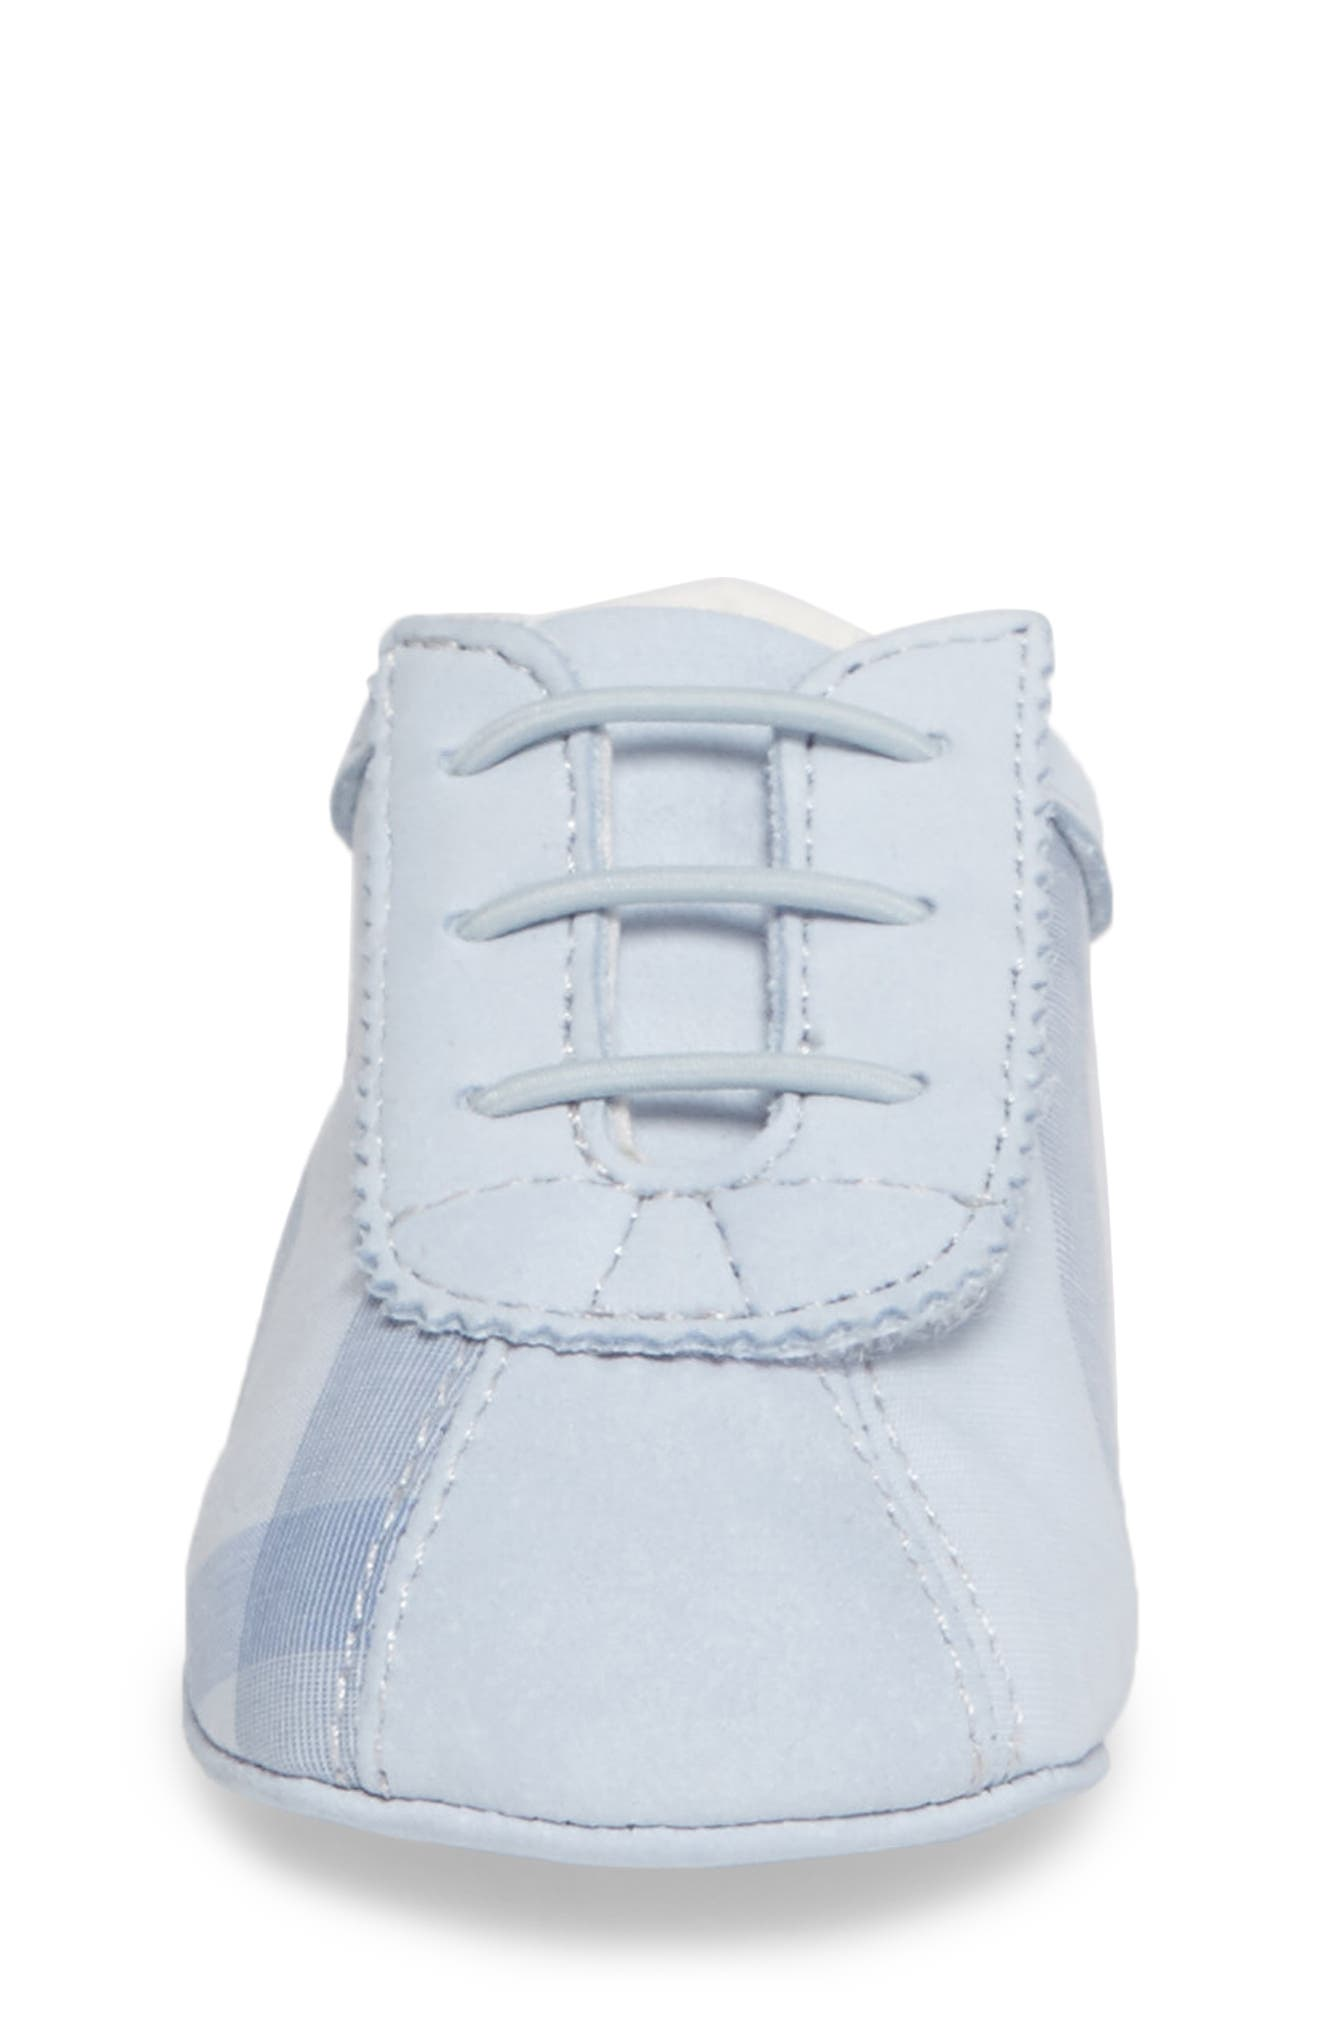 'Bosco' Crib Shoe,                             Alternate thumbnail 4, color,                             Ice Blue